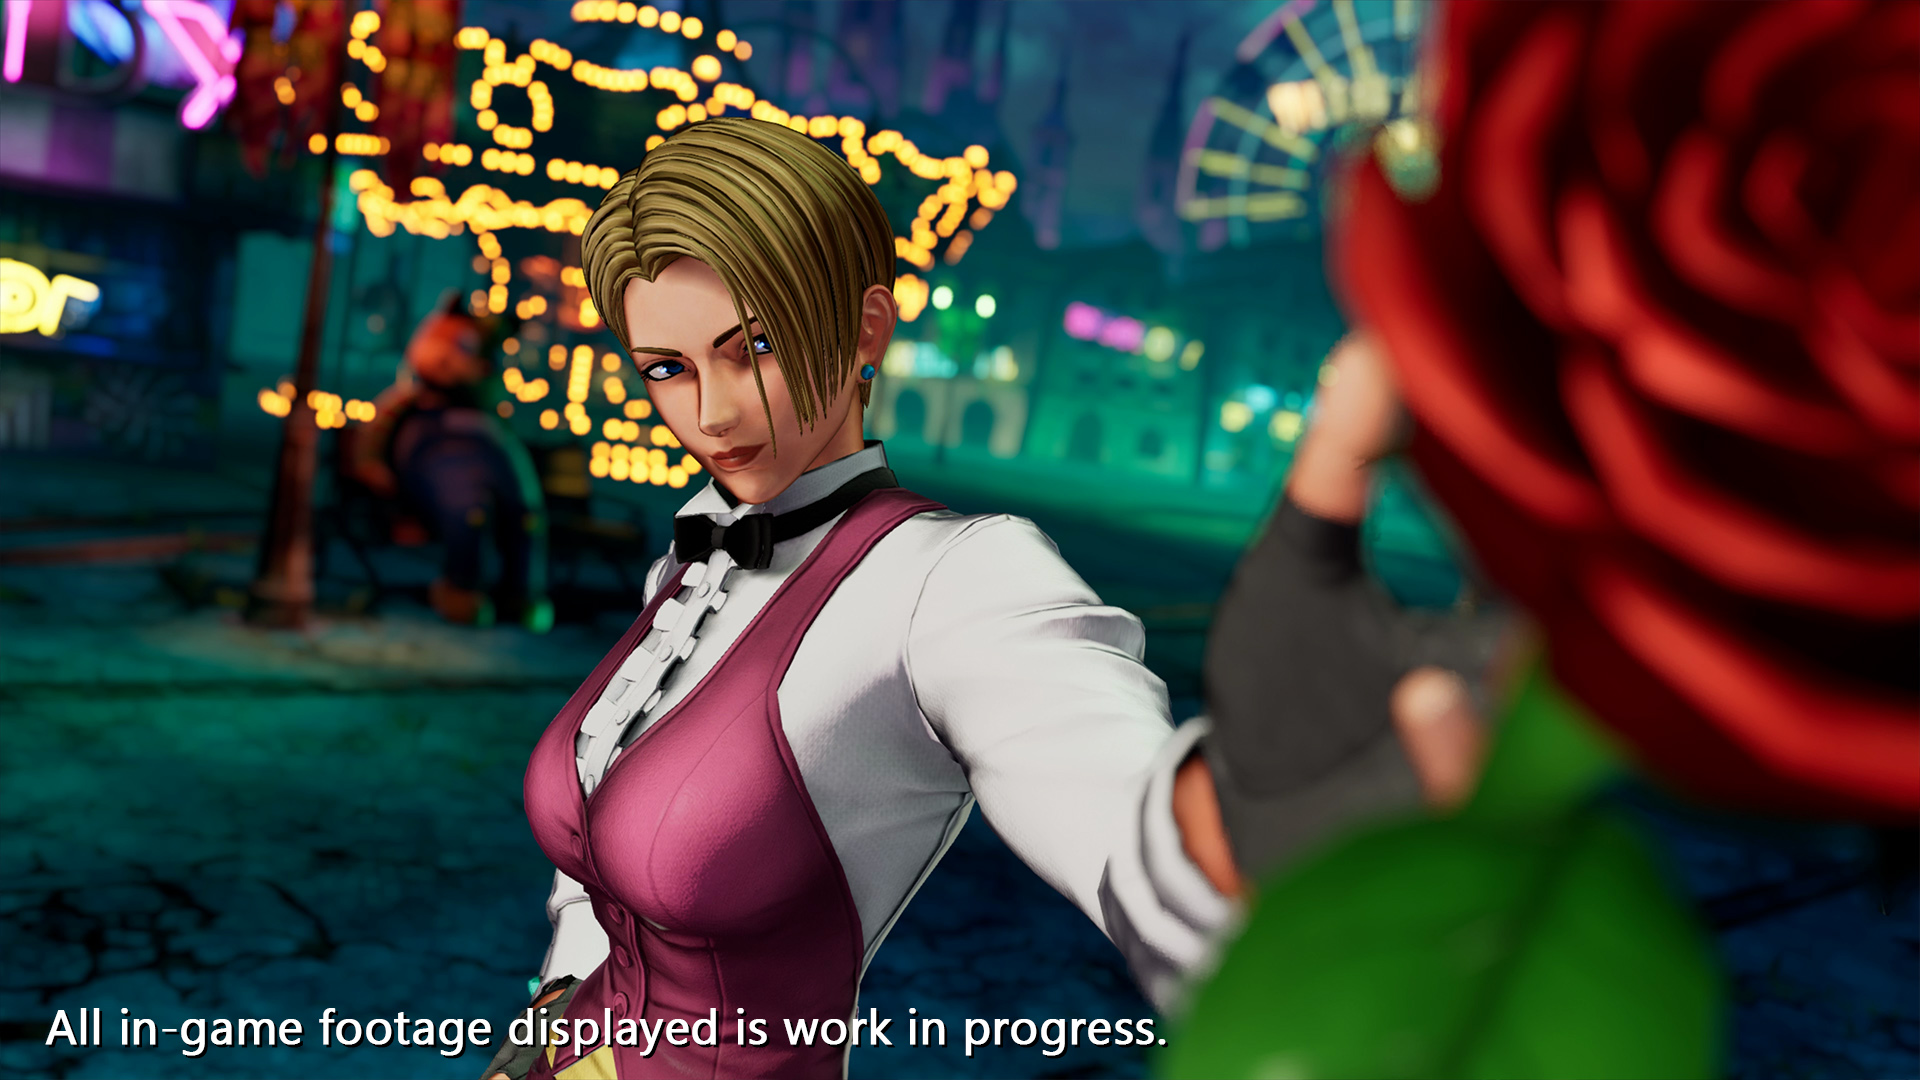 The King of Fighters 15's latest trailer shows off King